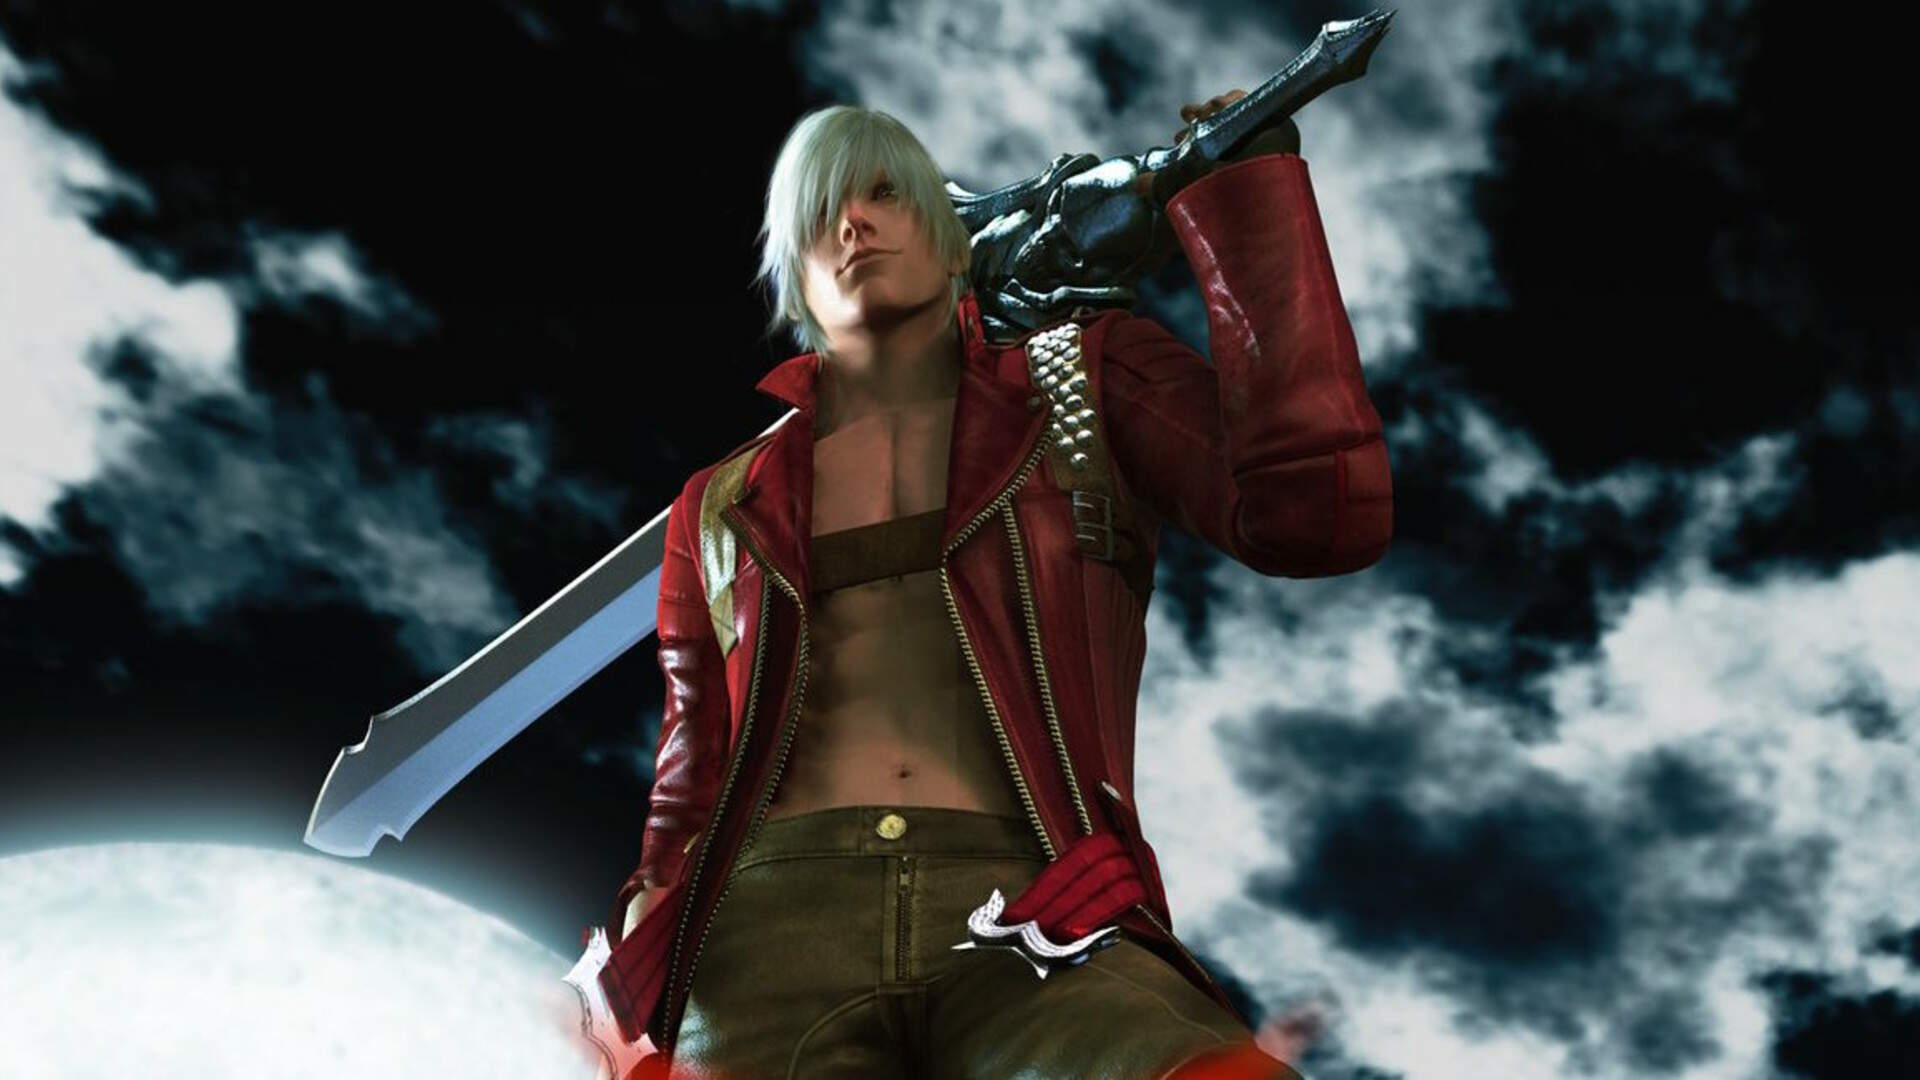 Devil May Cry 3 on Switch Introduces Style Switching